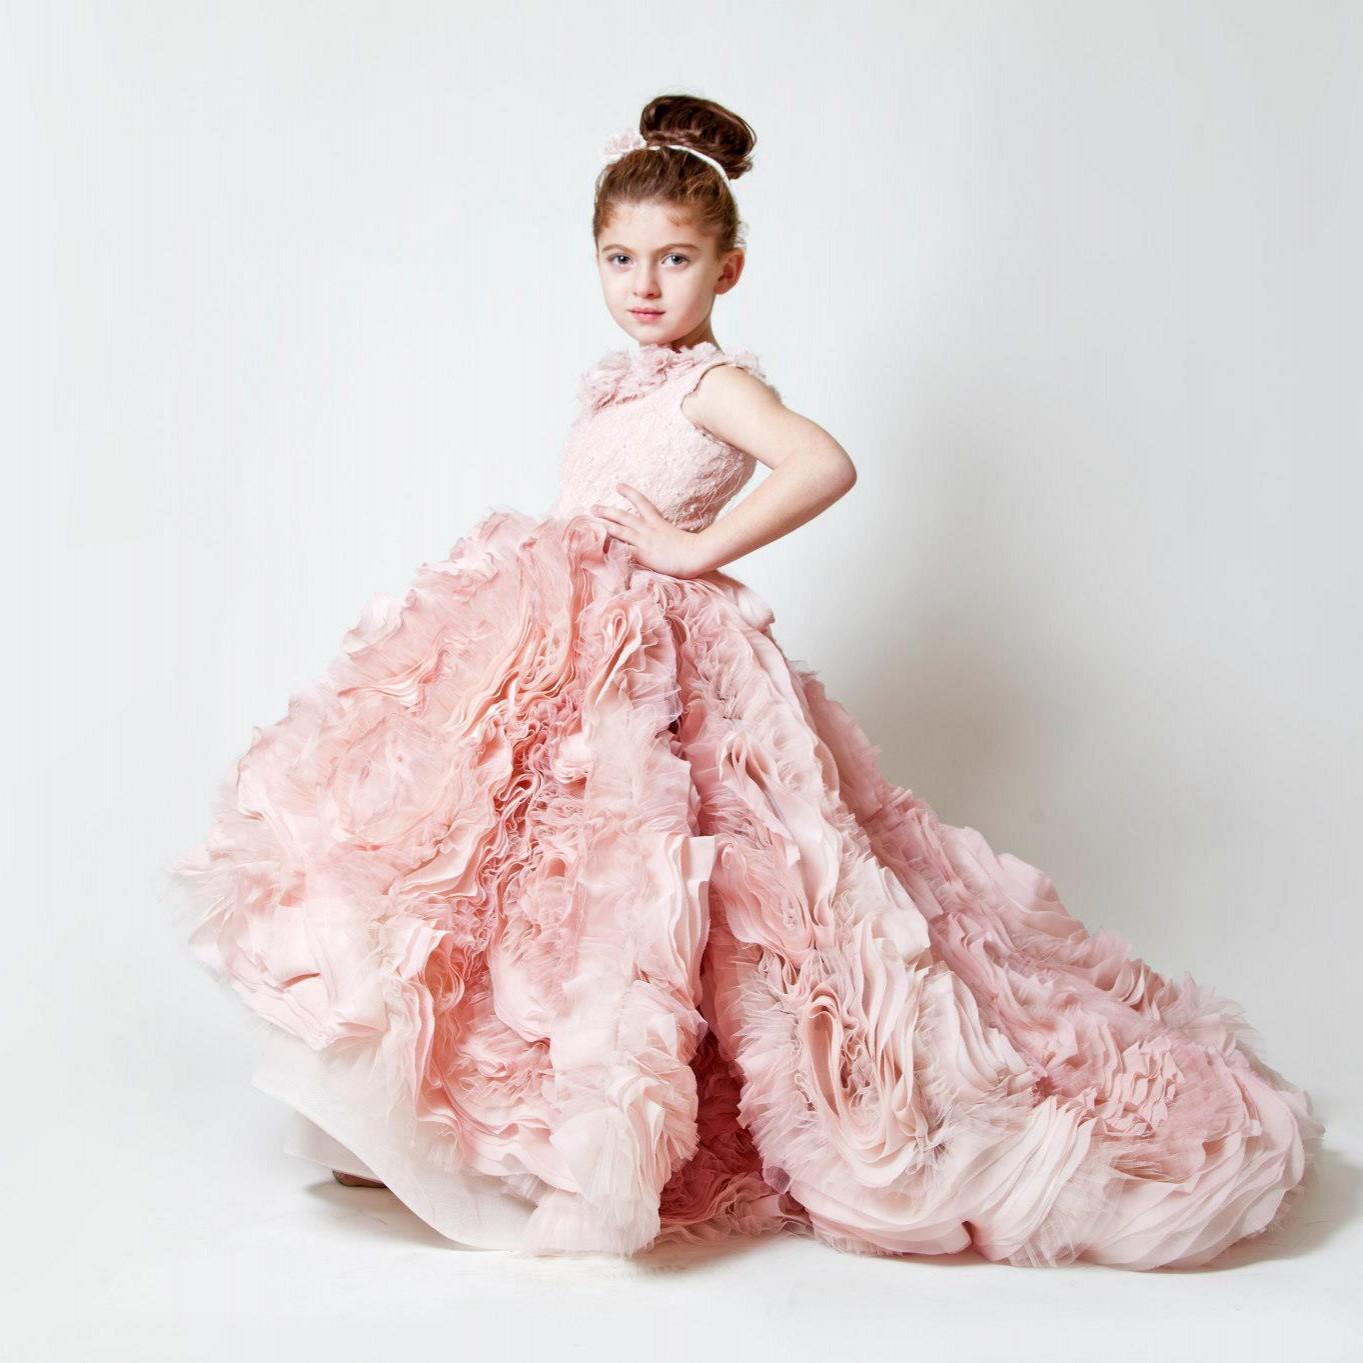 Dresses For Flower Girls For Weddings: 2016 Cute Pink Chiffon Ruffles Wedding Birthday Flower